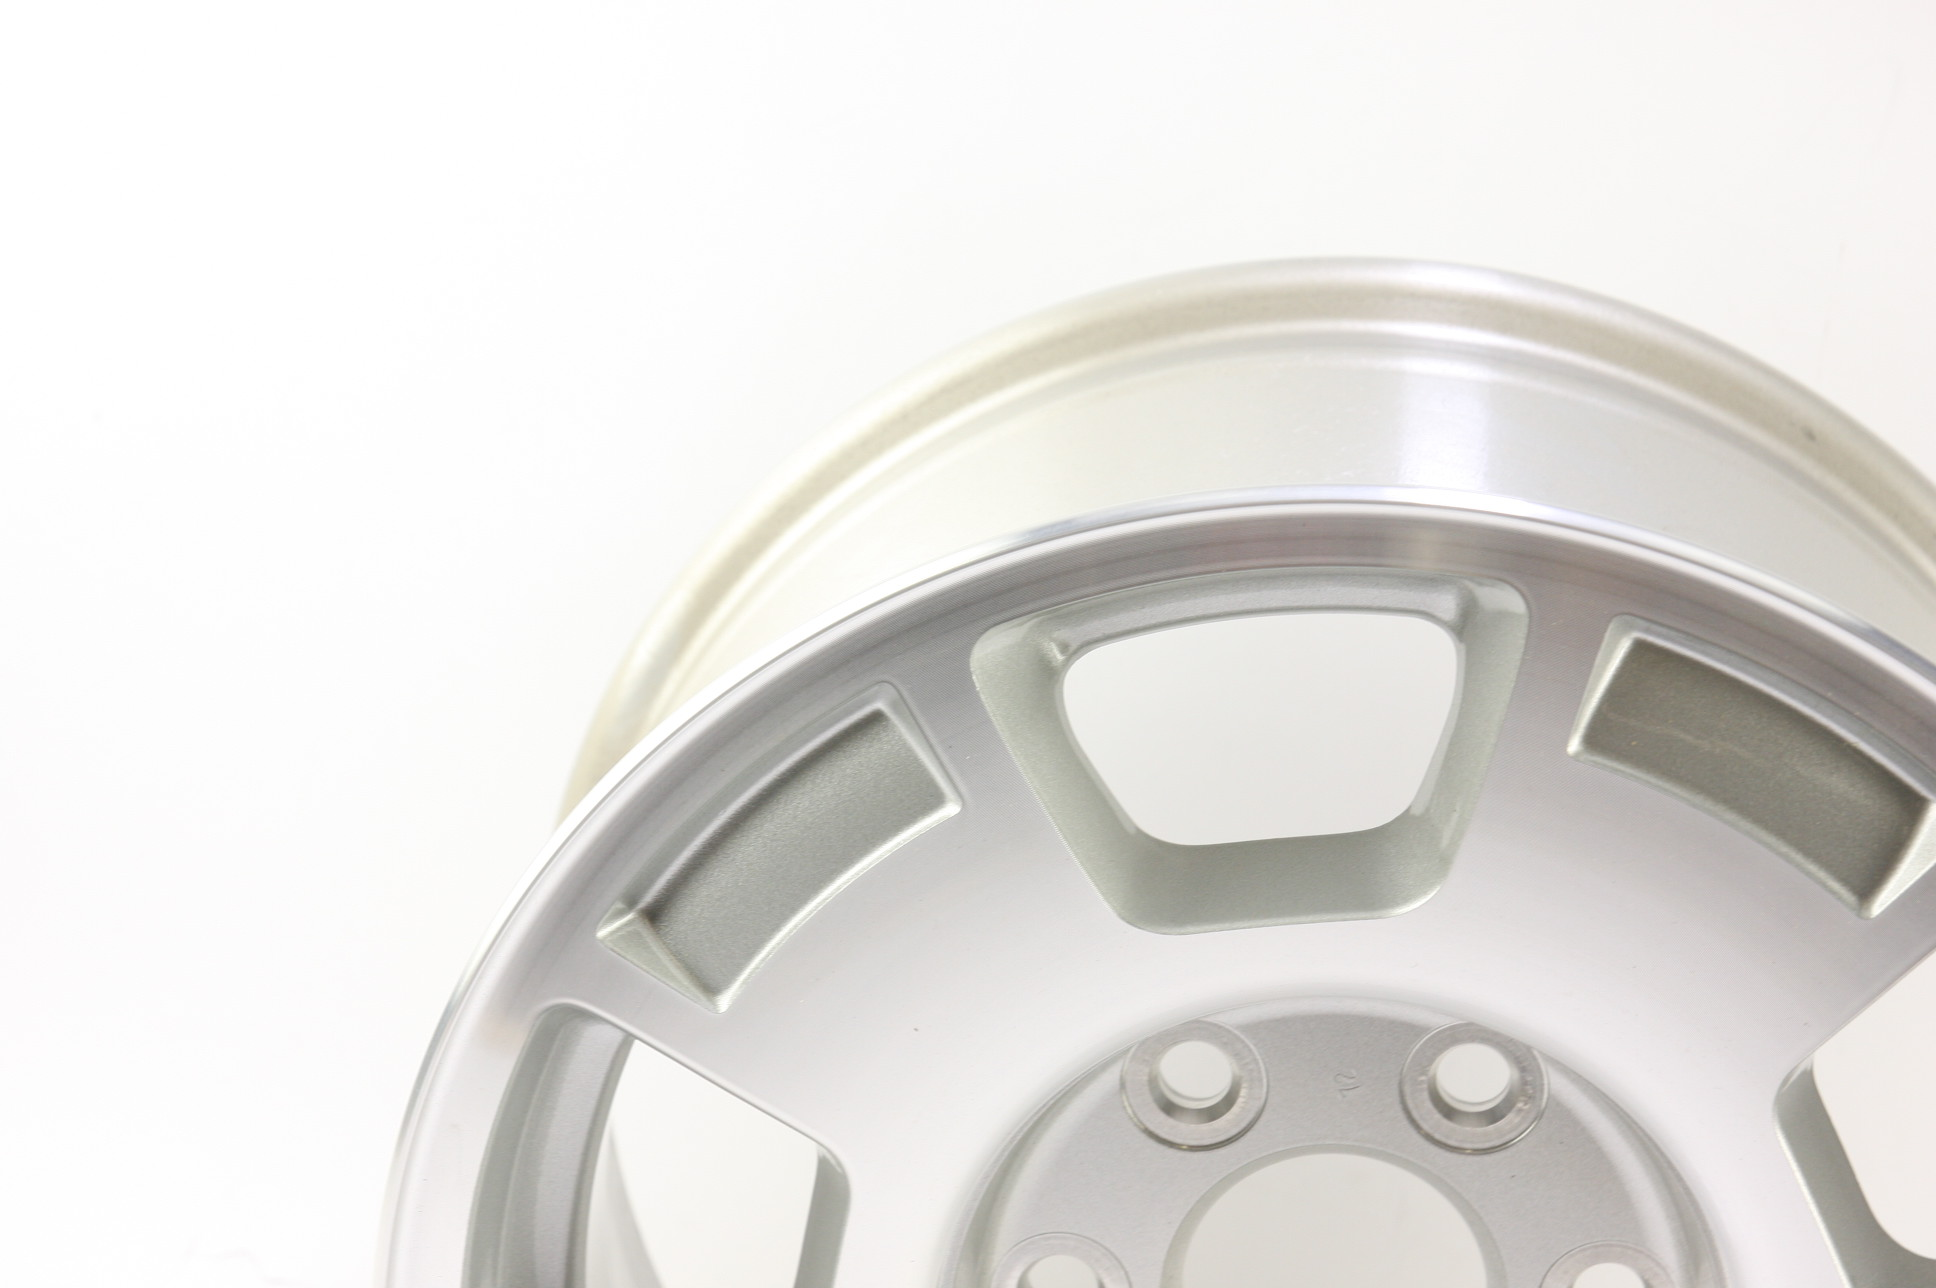 "* New OEM 9596050 Genuine GM Avalanche Silverado Suburban 17"" Wheel Alloy Rim - image 5"